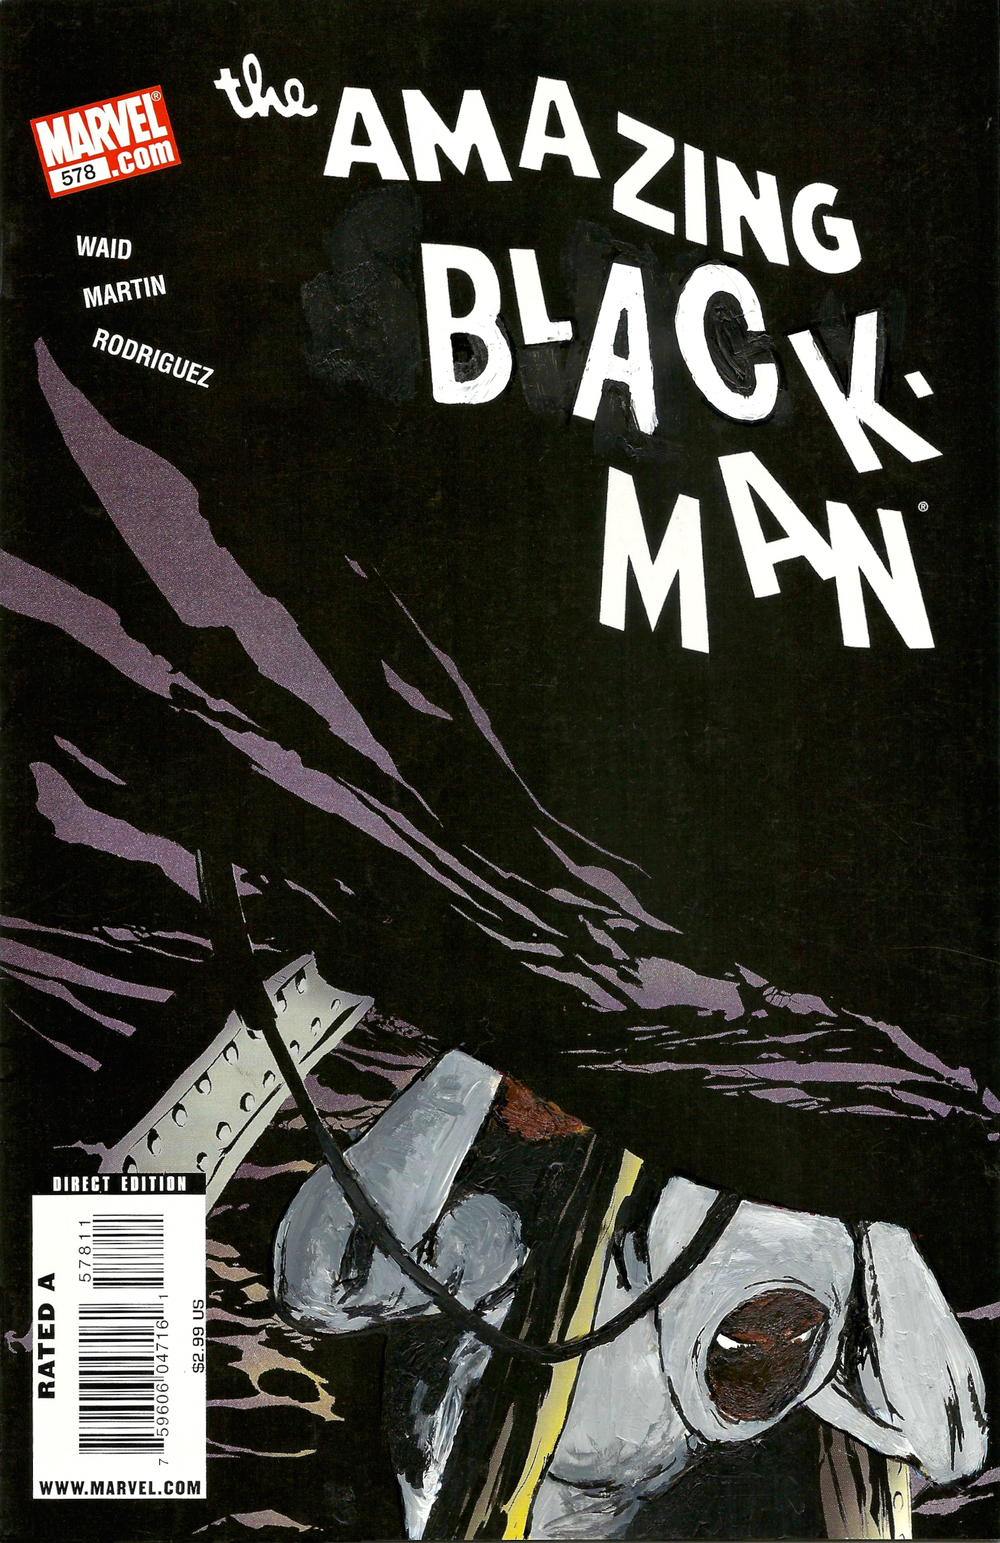 The Amazing Black-Man #578